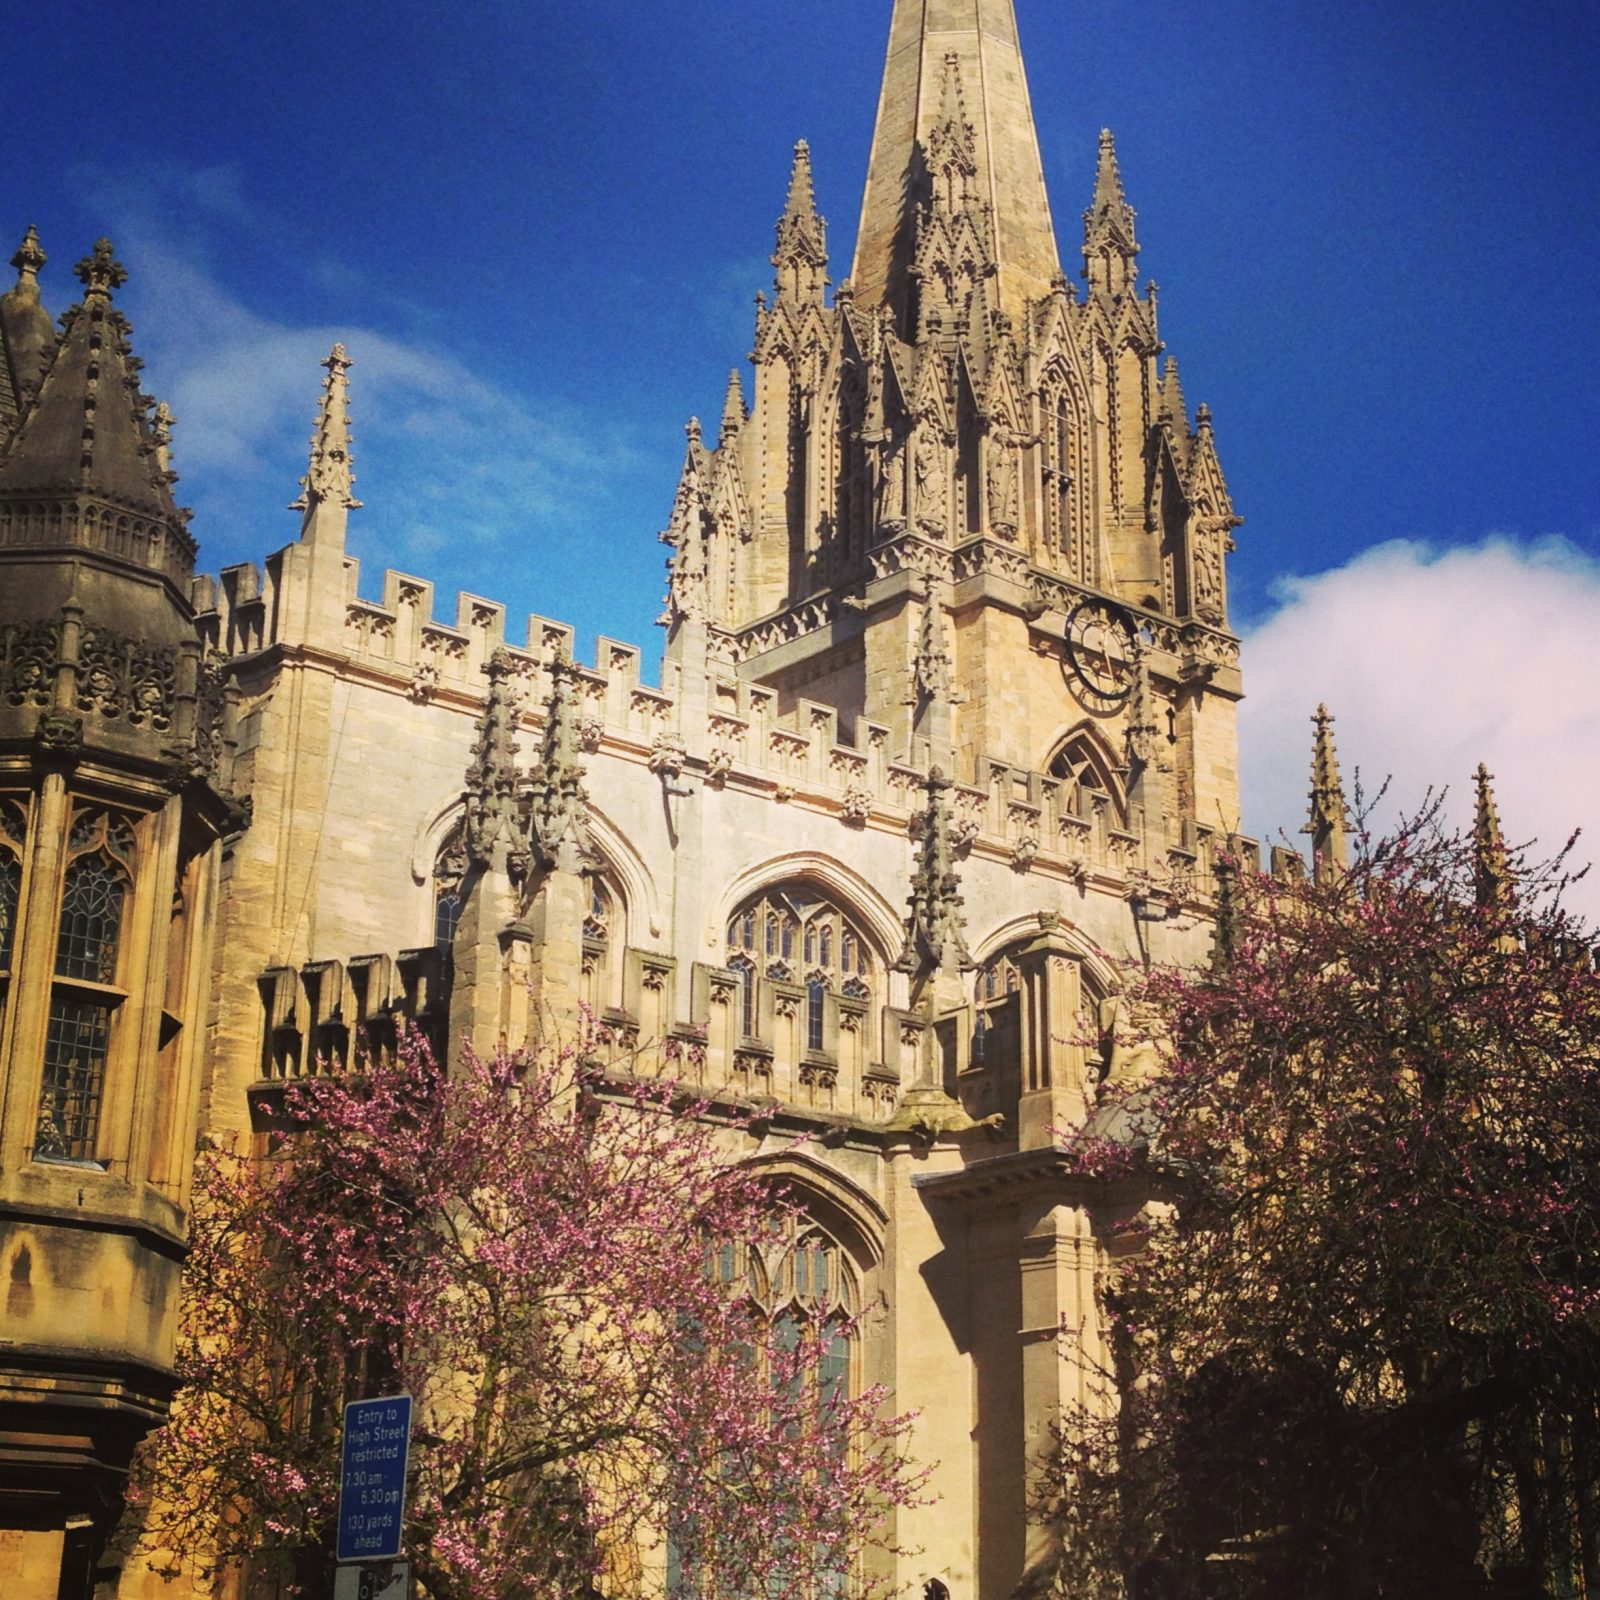 in pictures: last year's girl goes to oxford;